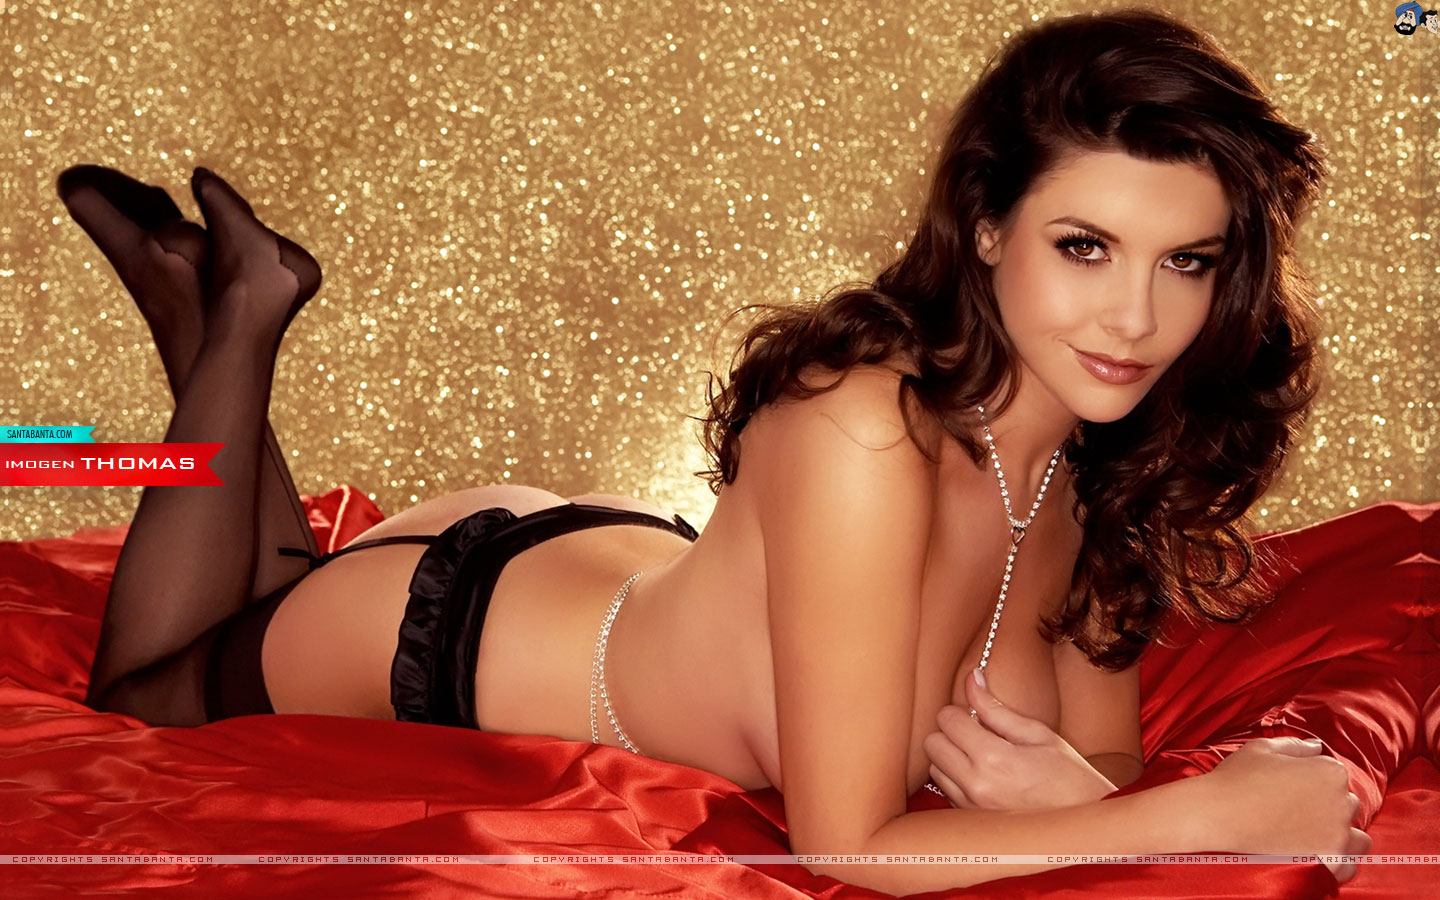 Imogen Thomas (full name Imogen Mary Thomas) was born on November 27, ...